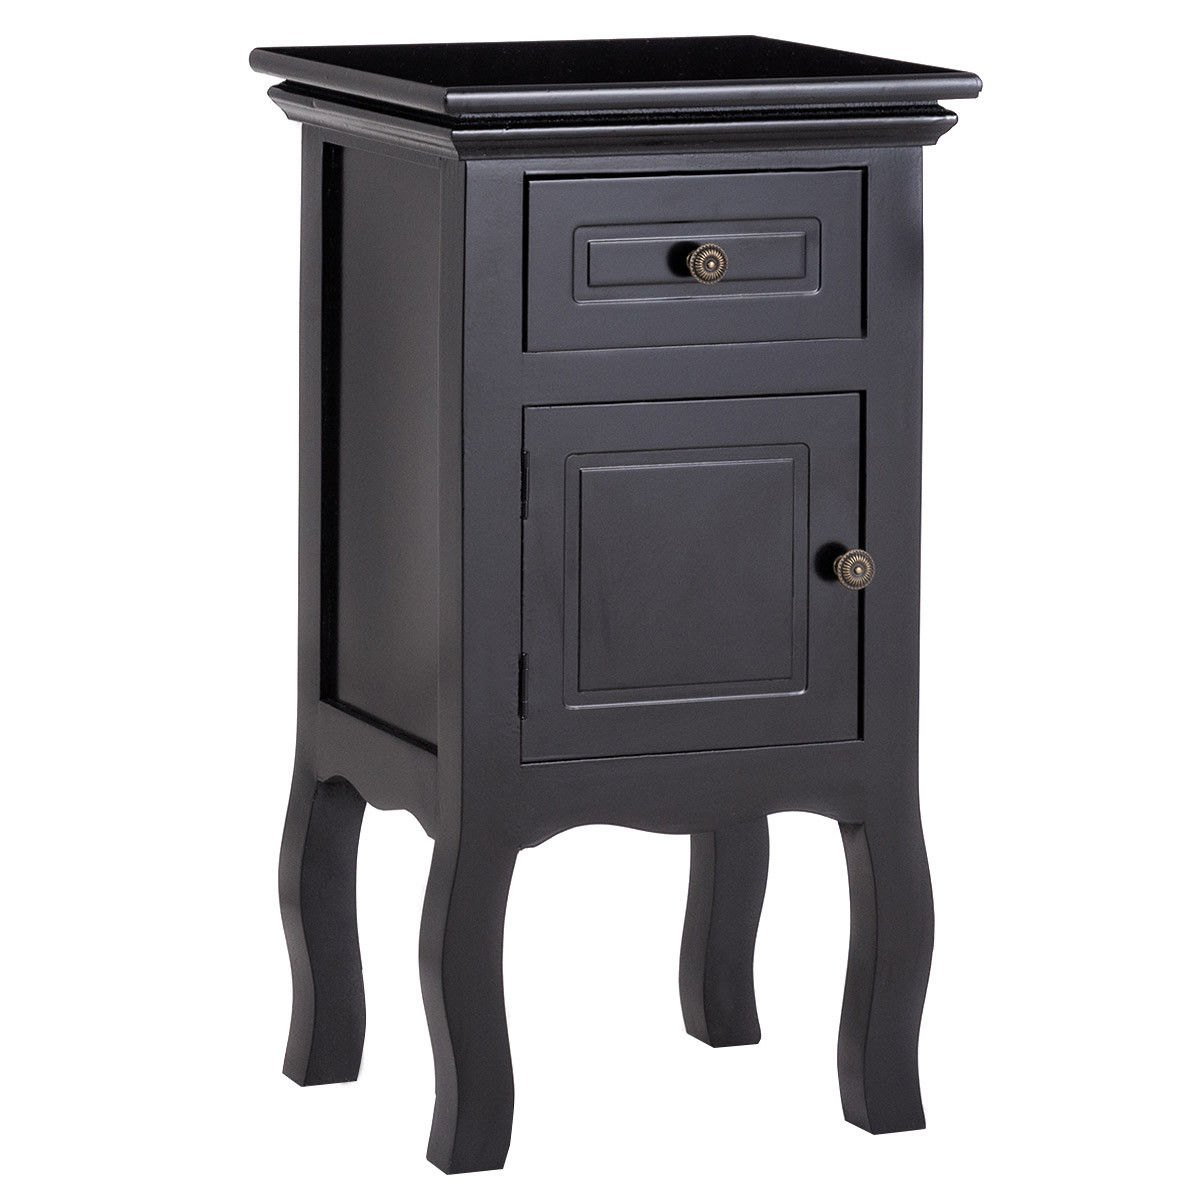 way black nightstand storage drawer and cabinet wood accent table end coffee with lamp attached outdoor console breakfast bar stools mid century lighting lily slim glass house